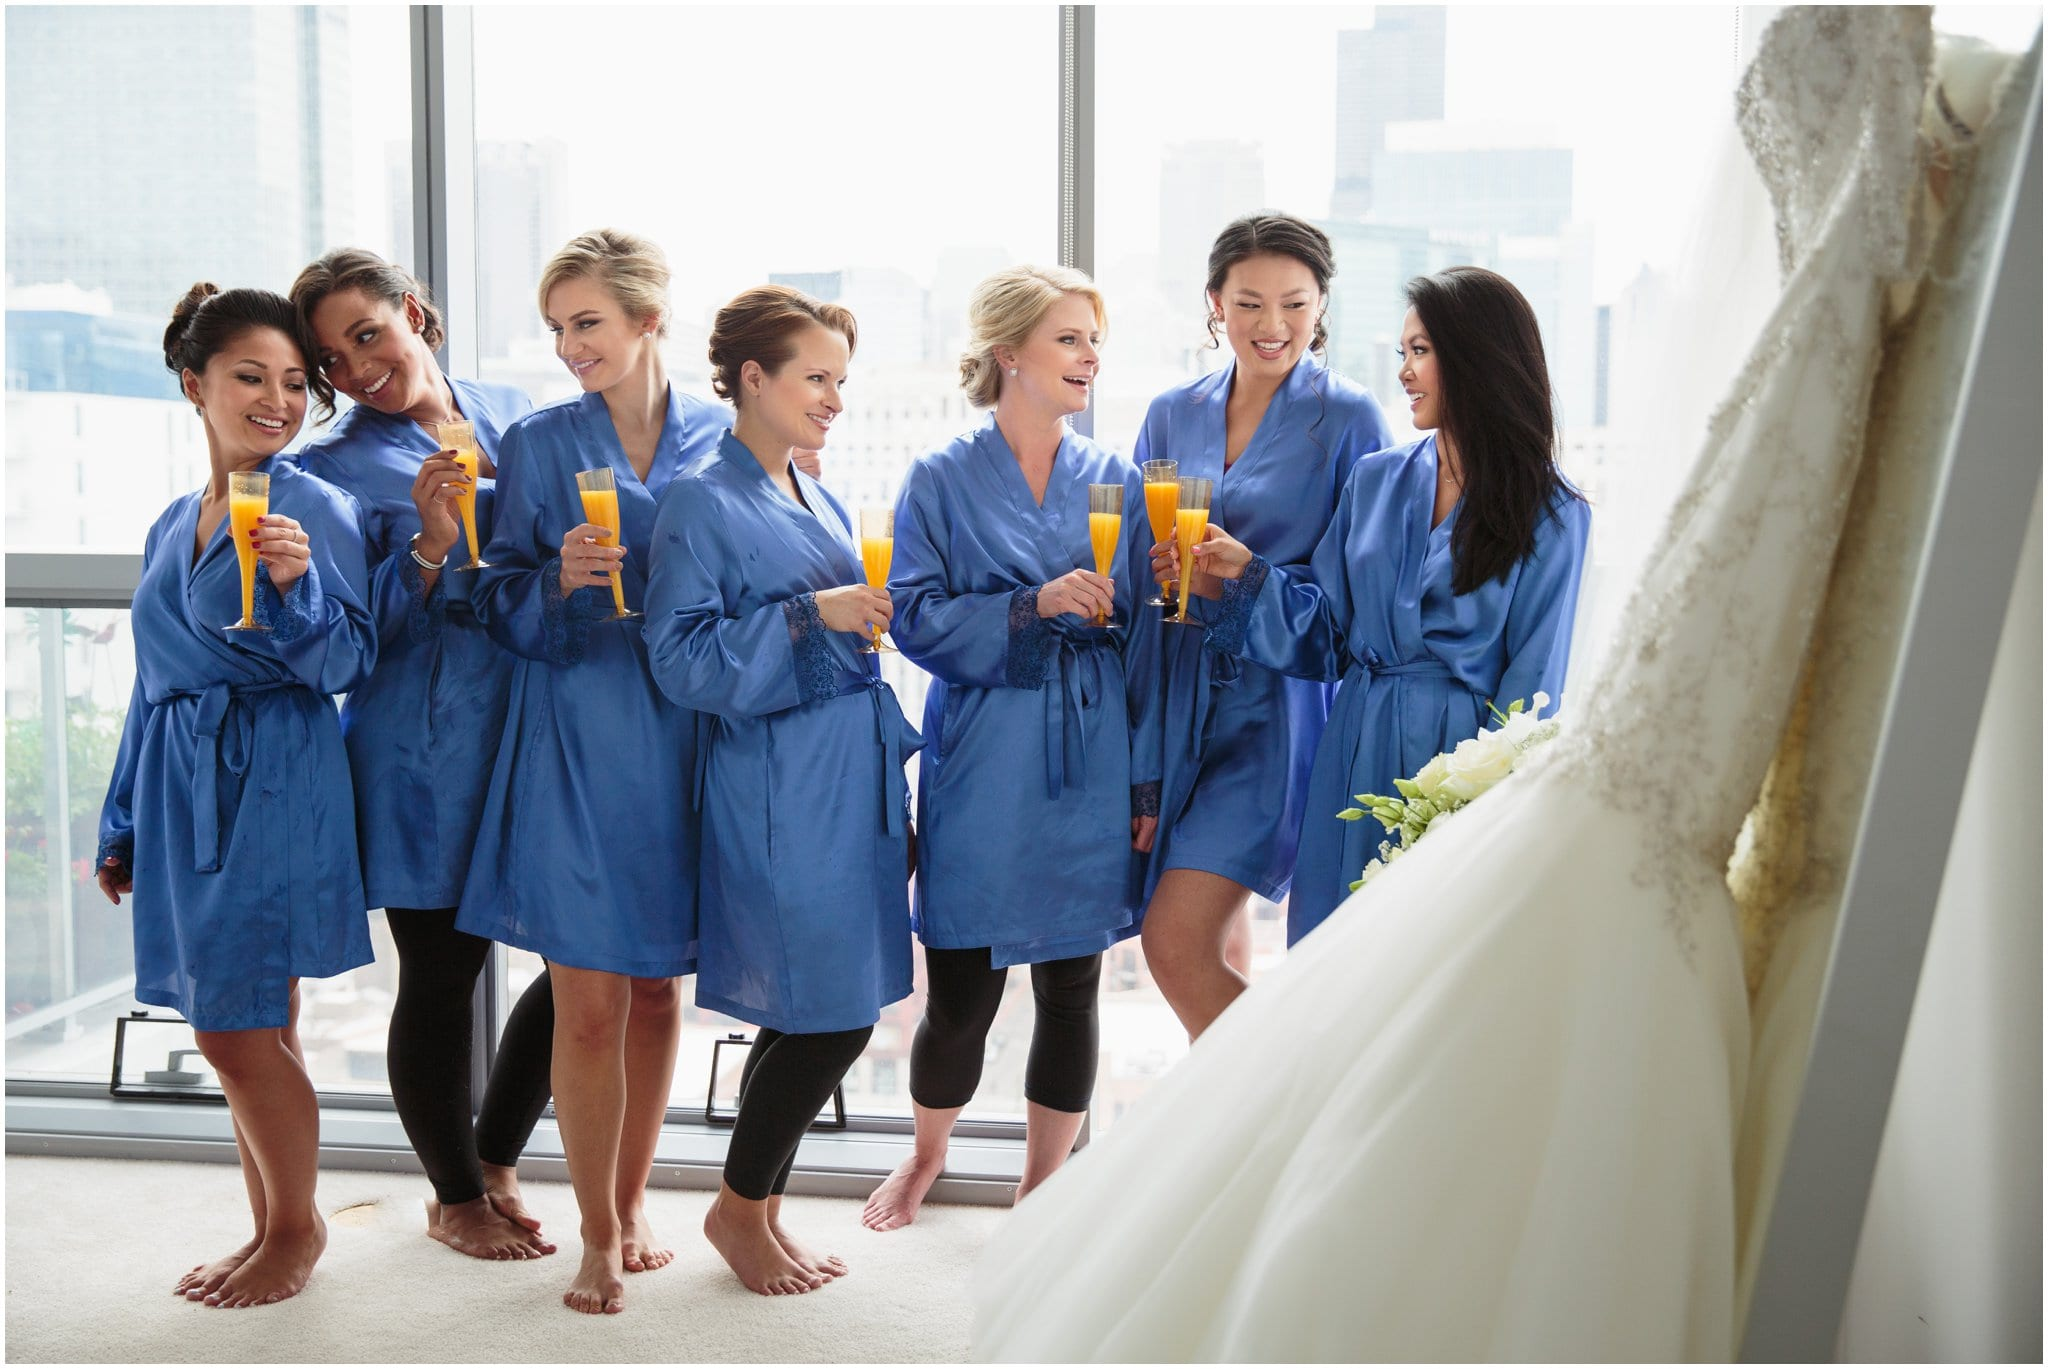 Chicago Bride - Wes Craft Photography